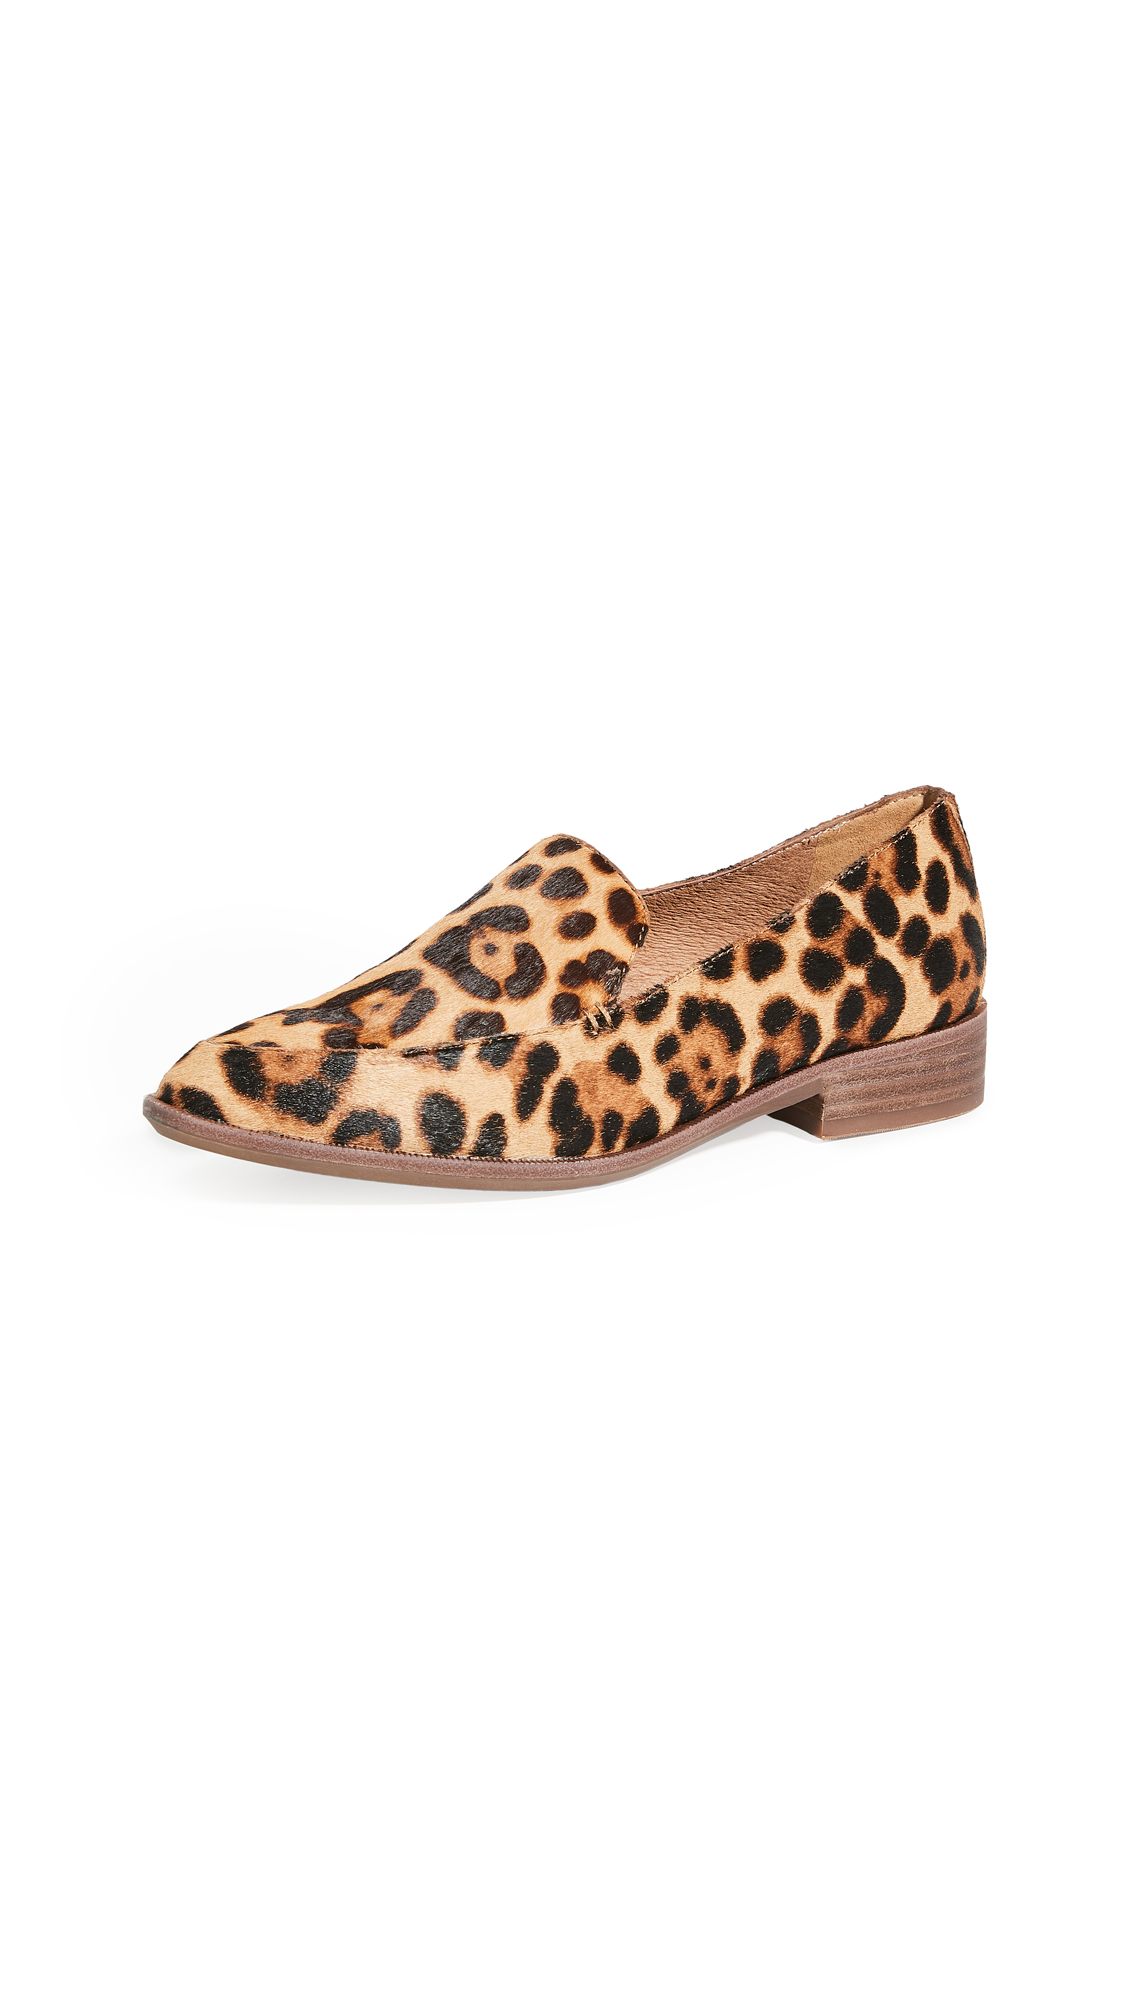 Madewell The Frances Loafers In Truffle Multi